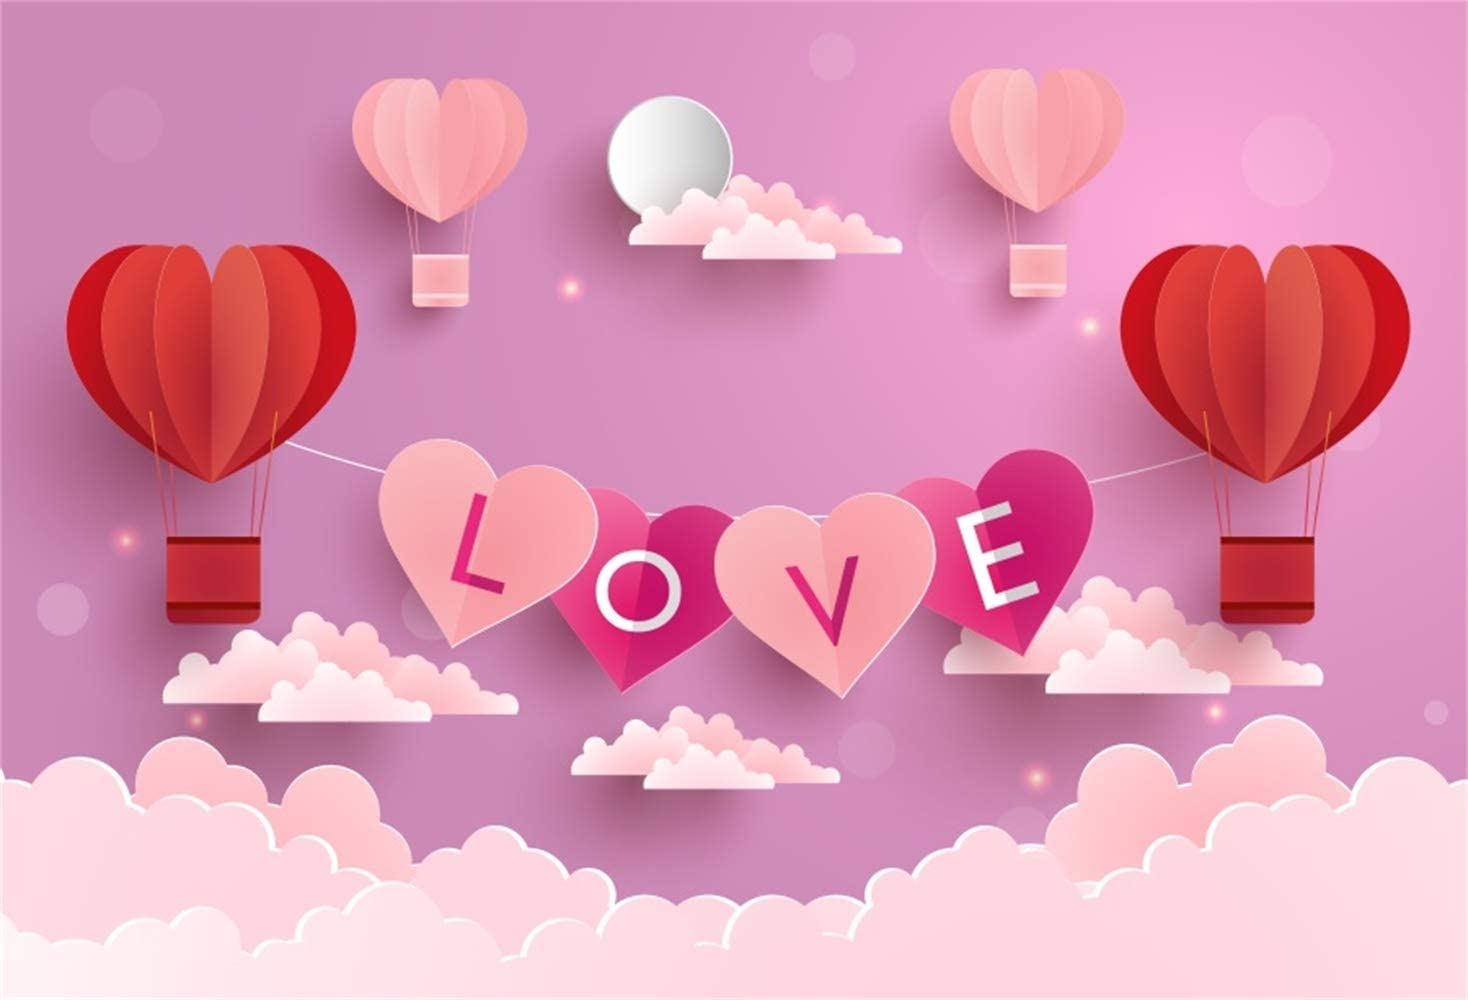 Laeacco 10x7ft Dusk Wildland Highway Bicycle Colorful Heart Balloon Bunch Reeds Vinyl Photography Background Birthday Party Banner Backdrop Child Adult Portrait Shoot Wallpaper Studio Props